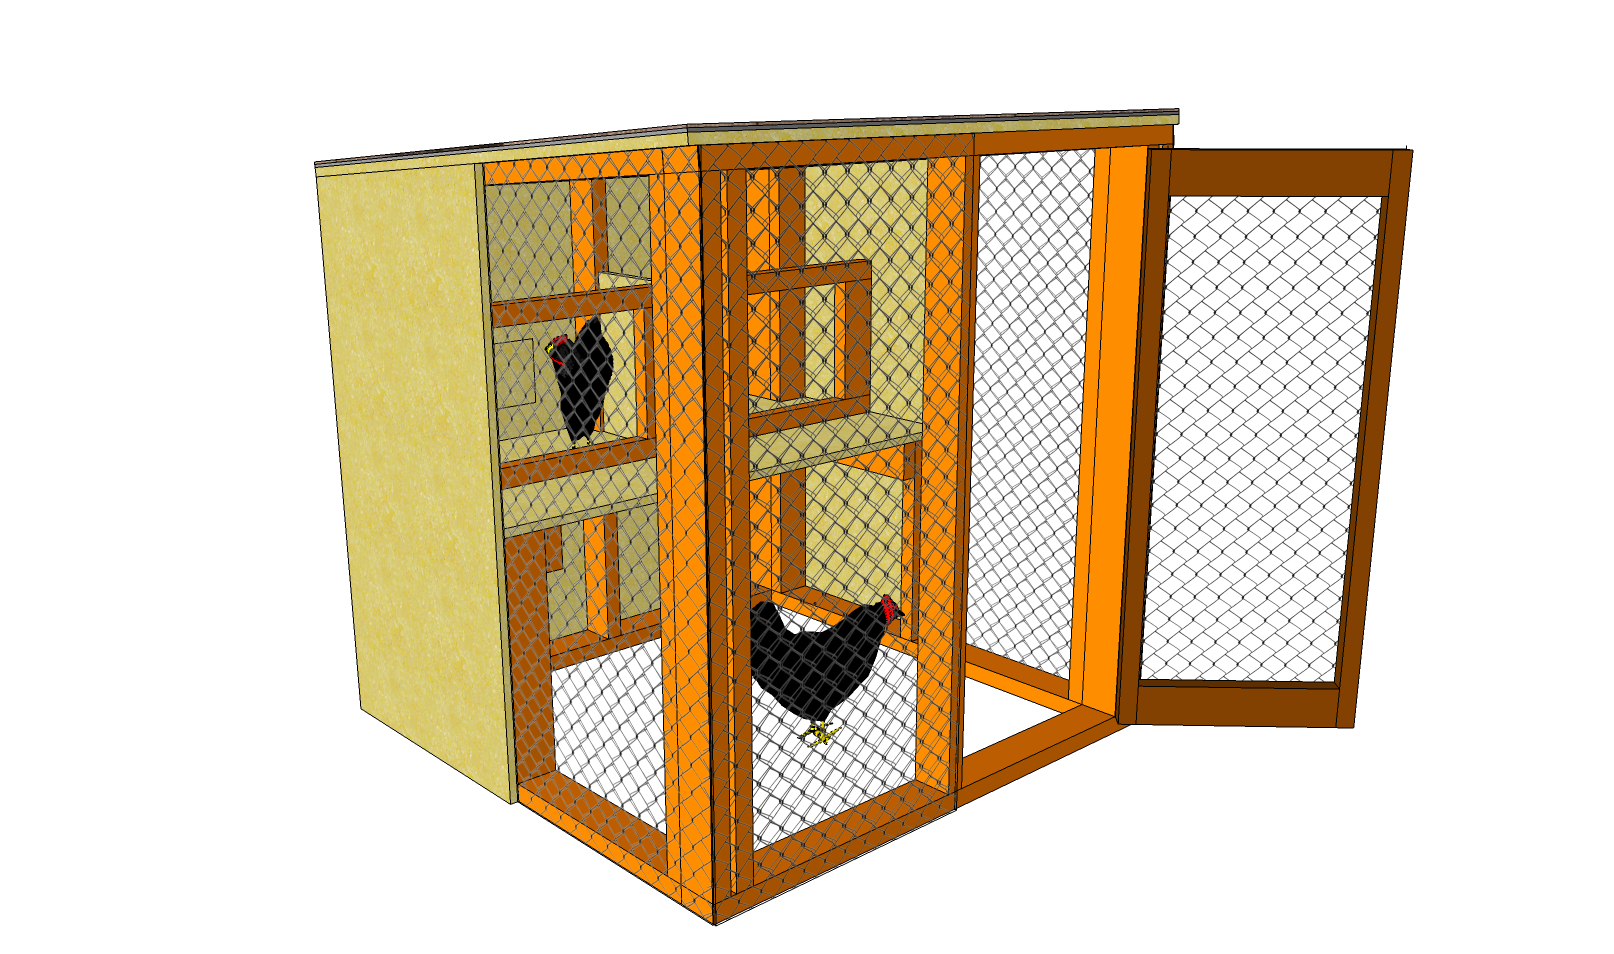 A Frame Chicken Coop Plans MyOutdoorPlans Free Woodworking